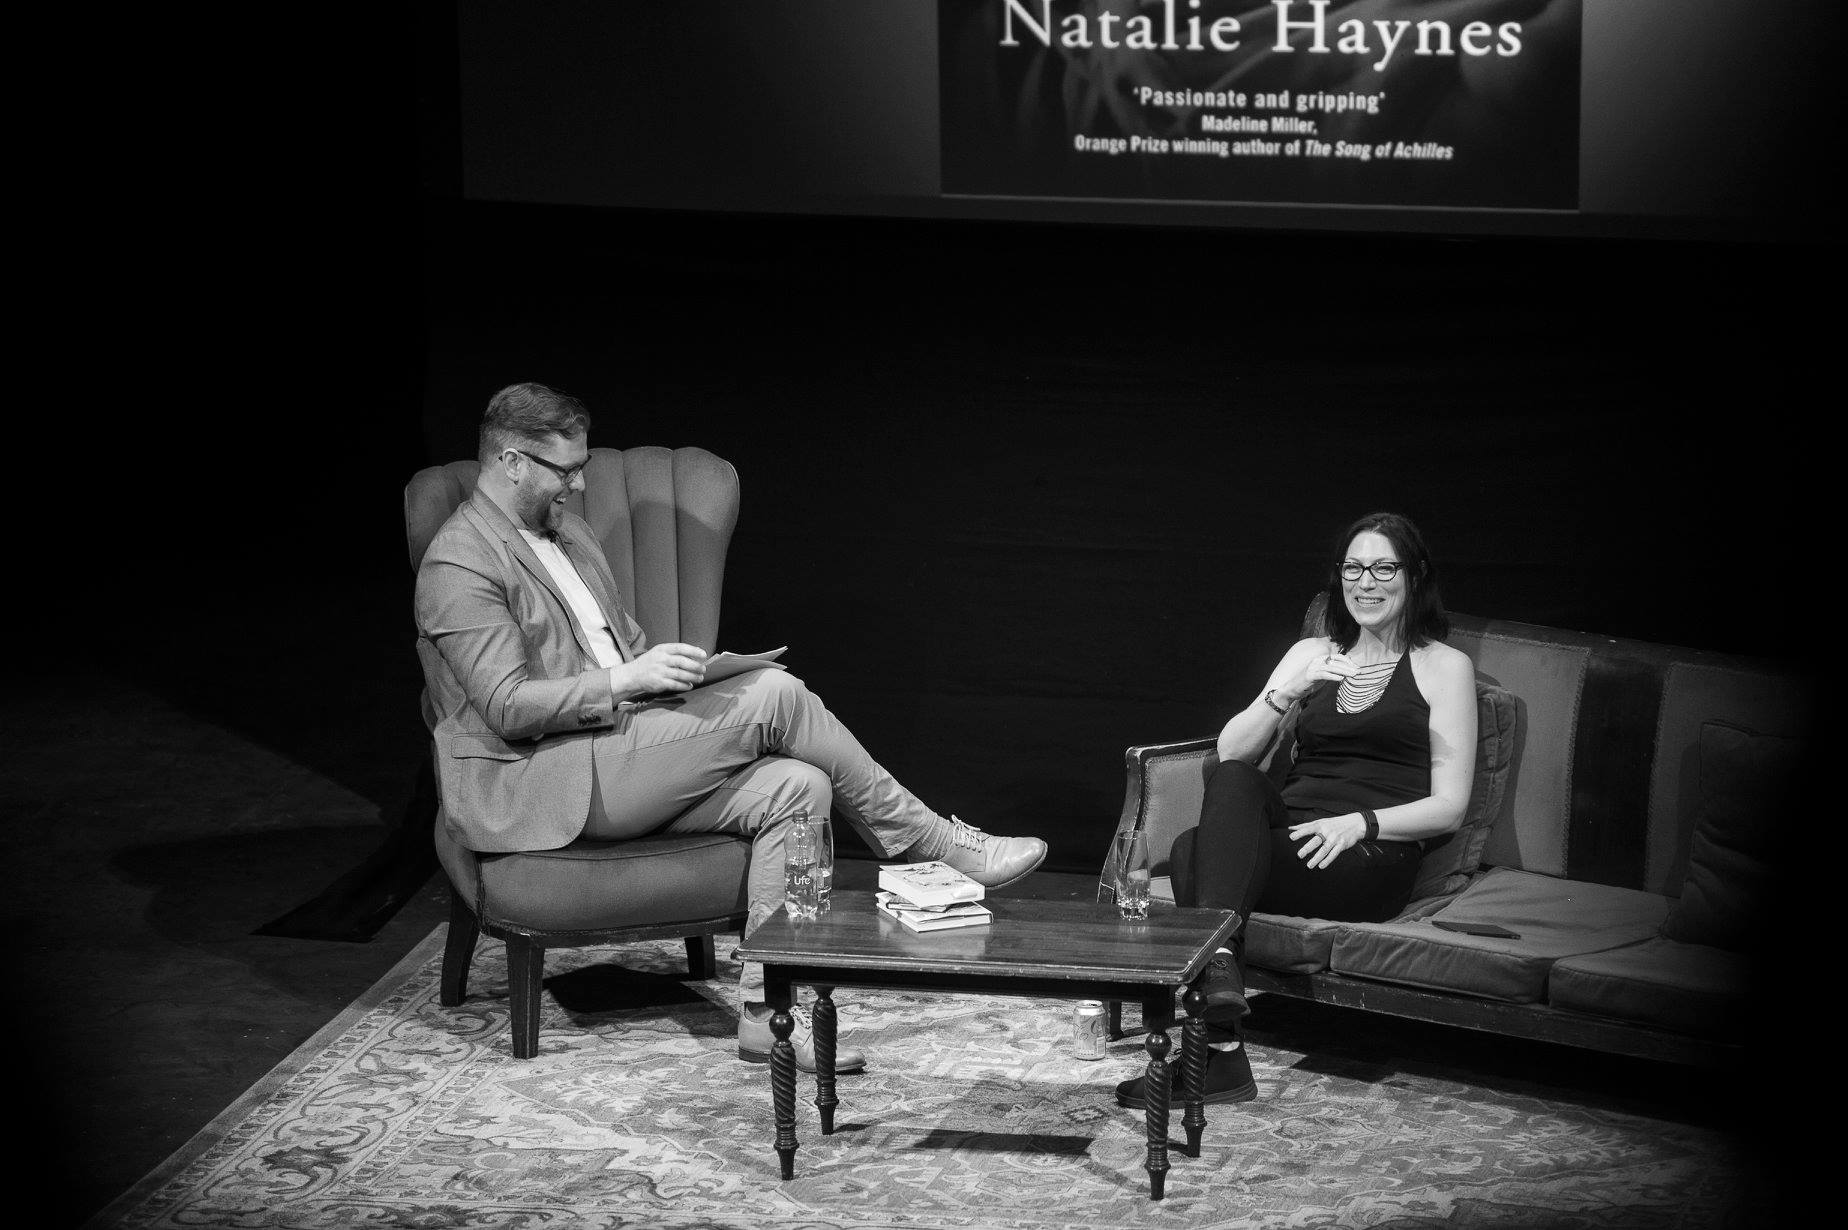 Damian Barr and Natalie Haynes